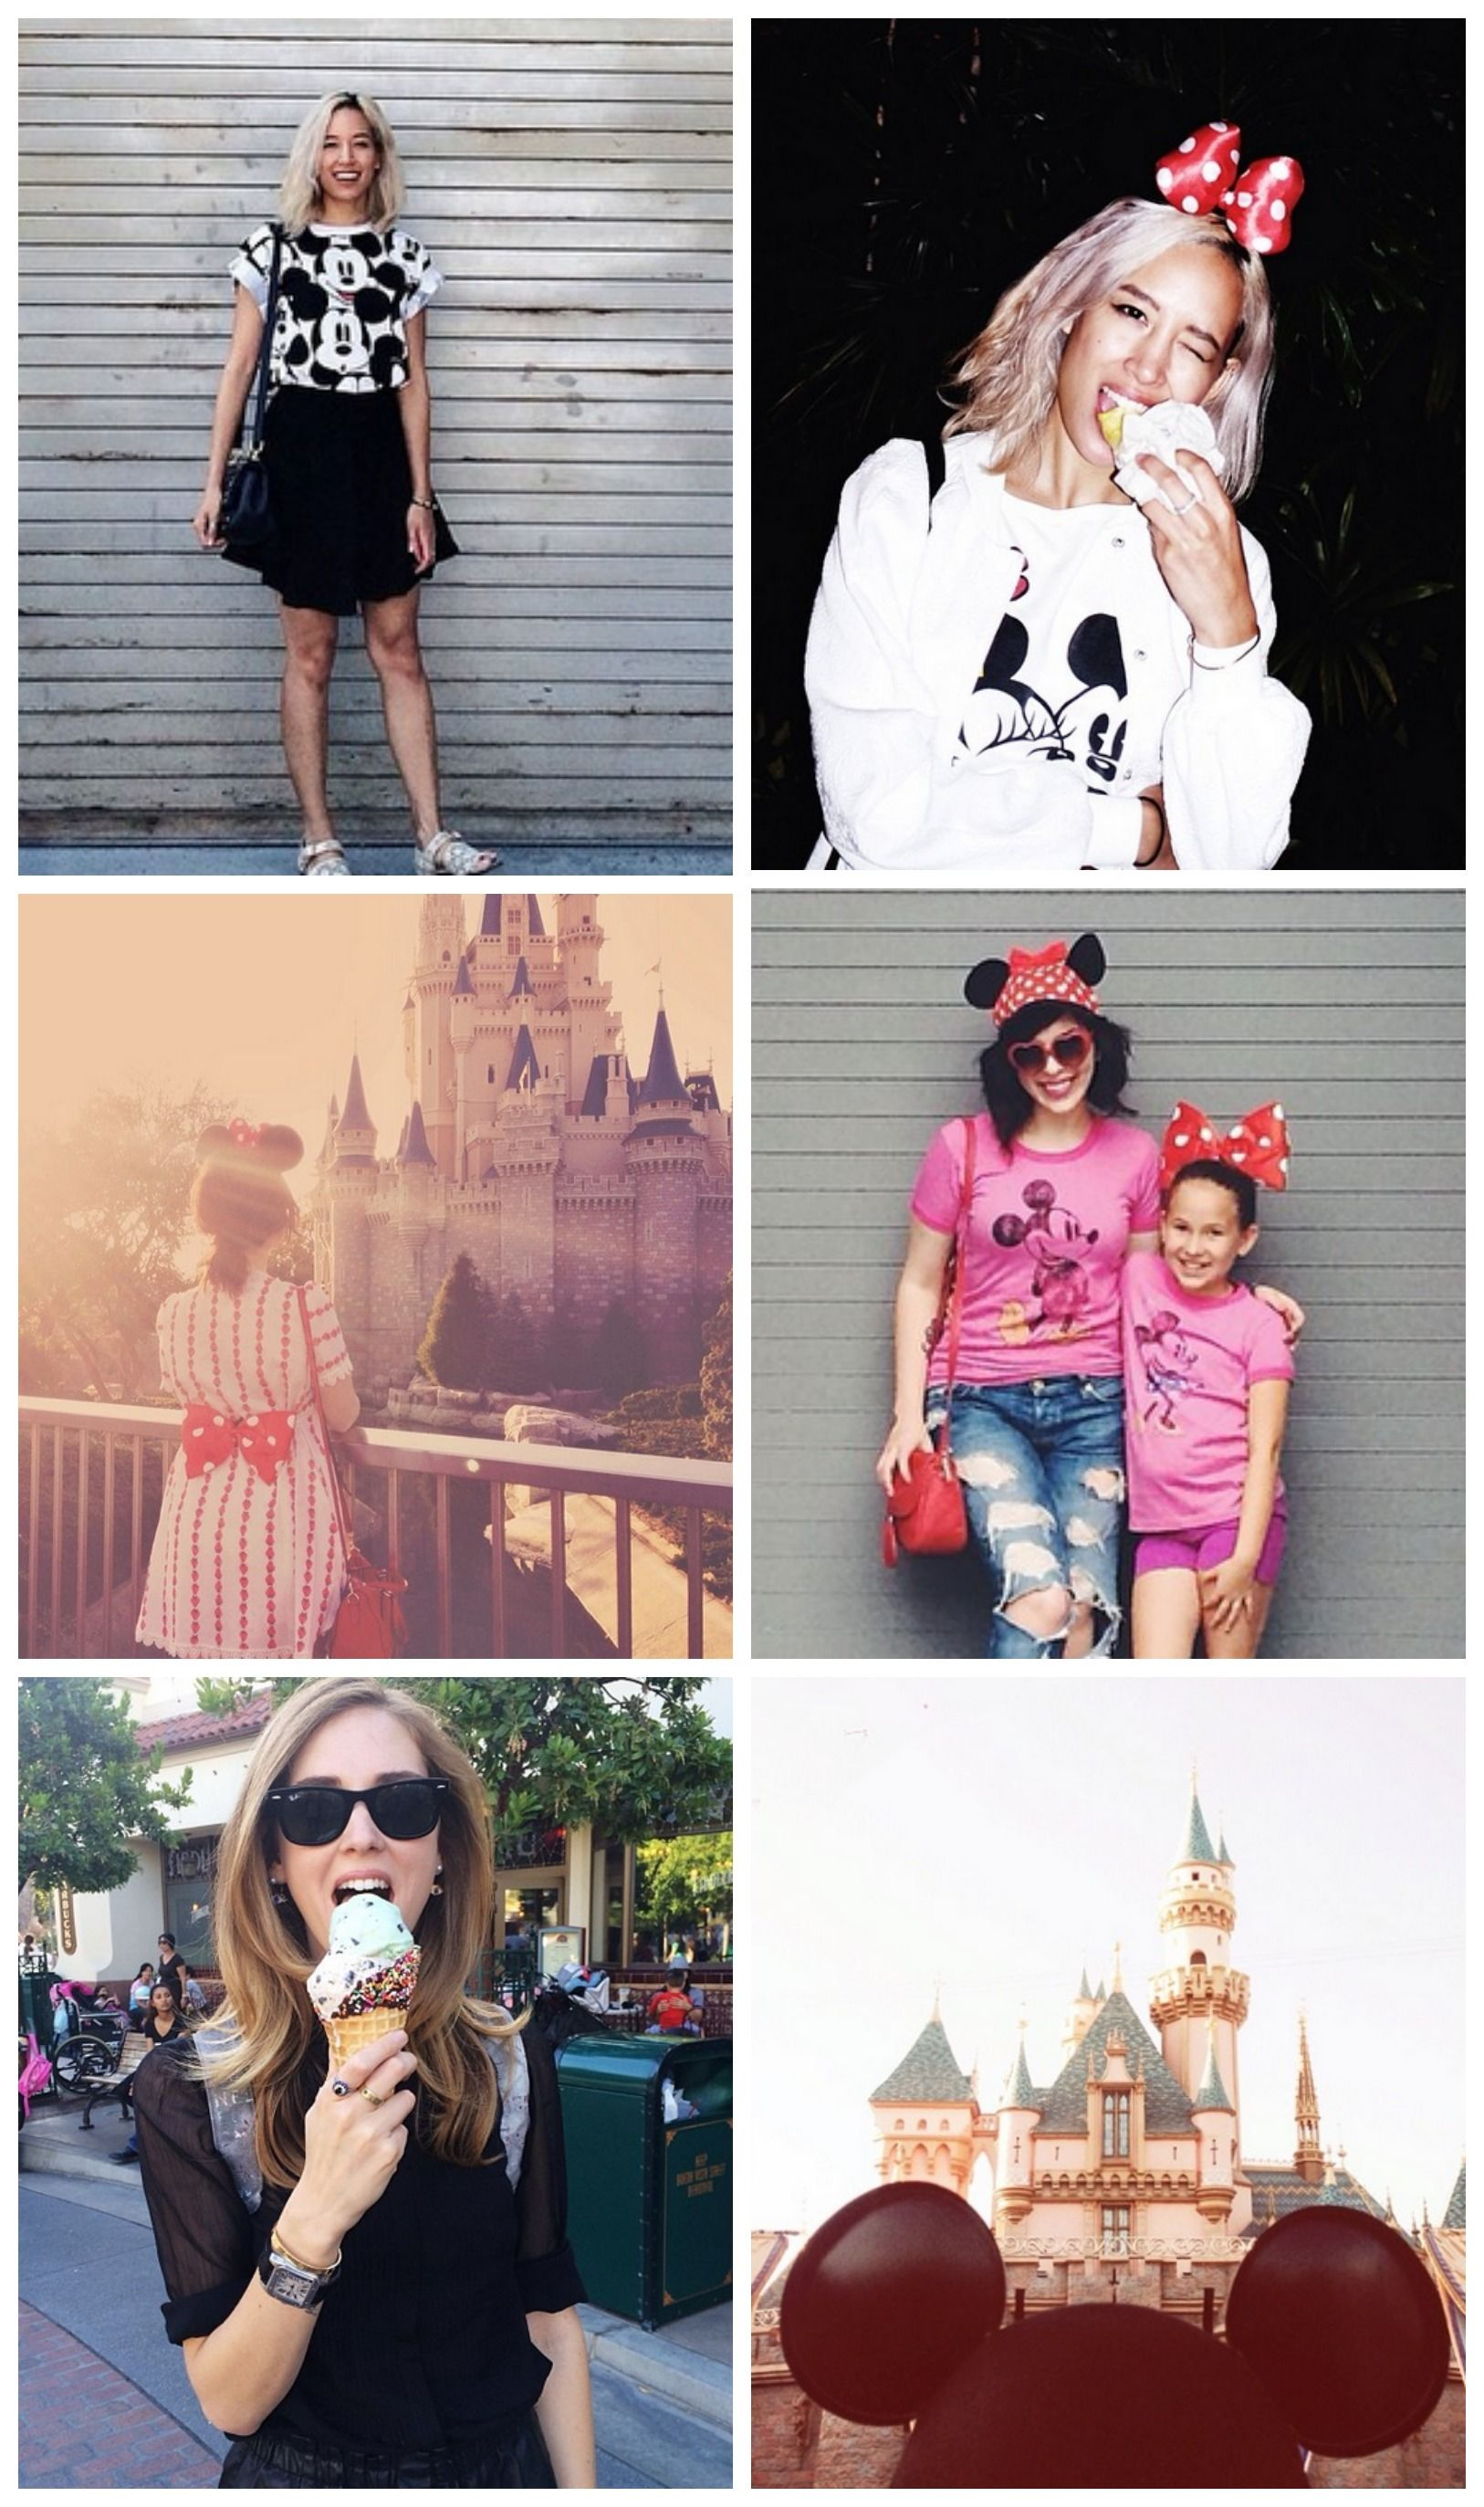 Our favorite fashion bloggers show off their Disney style.